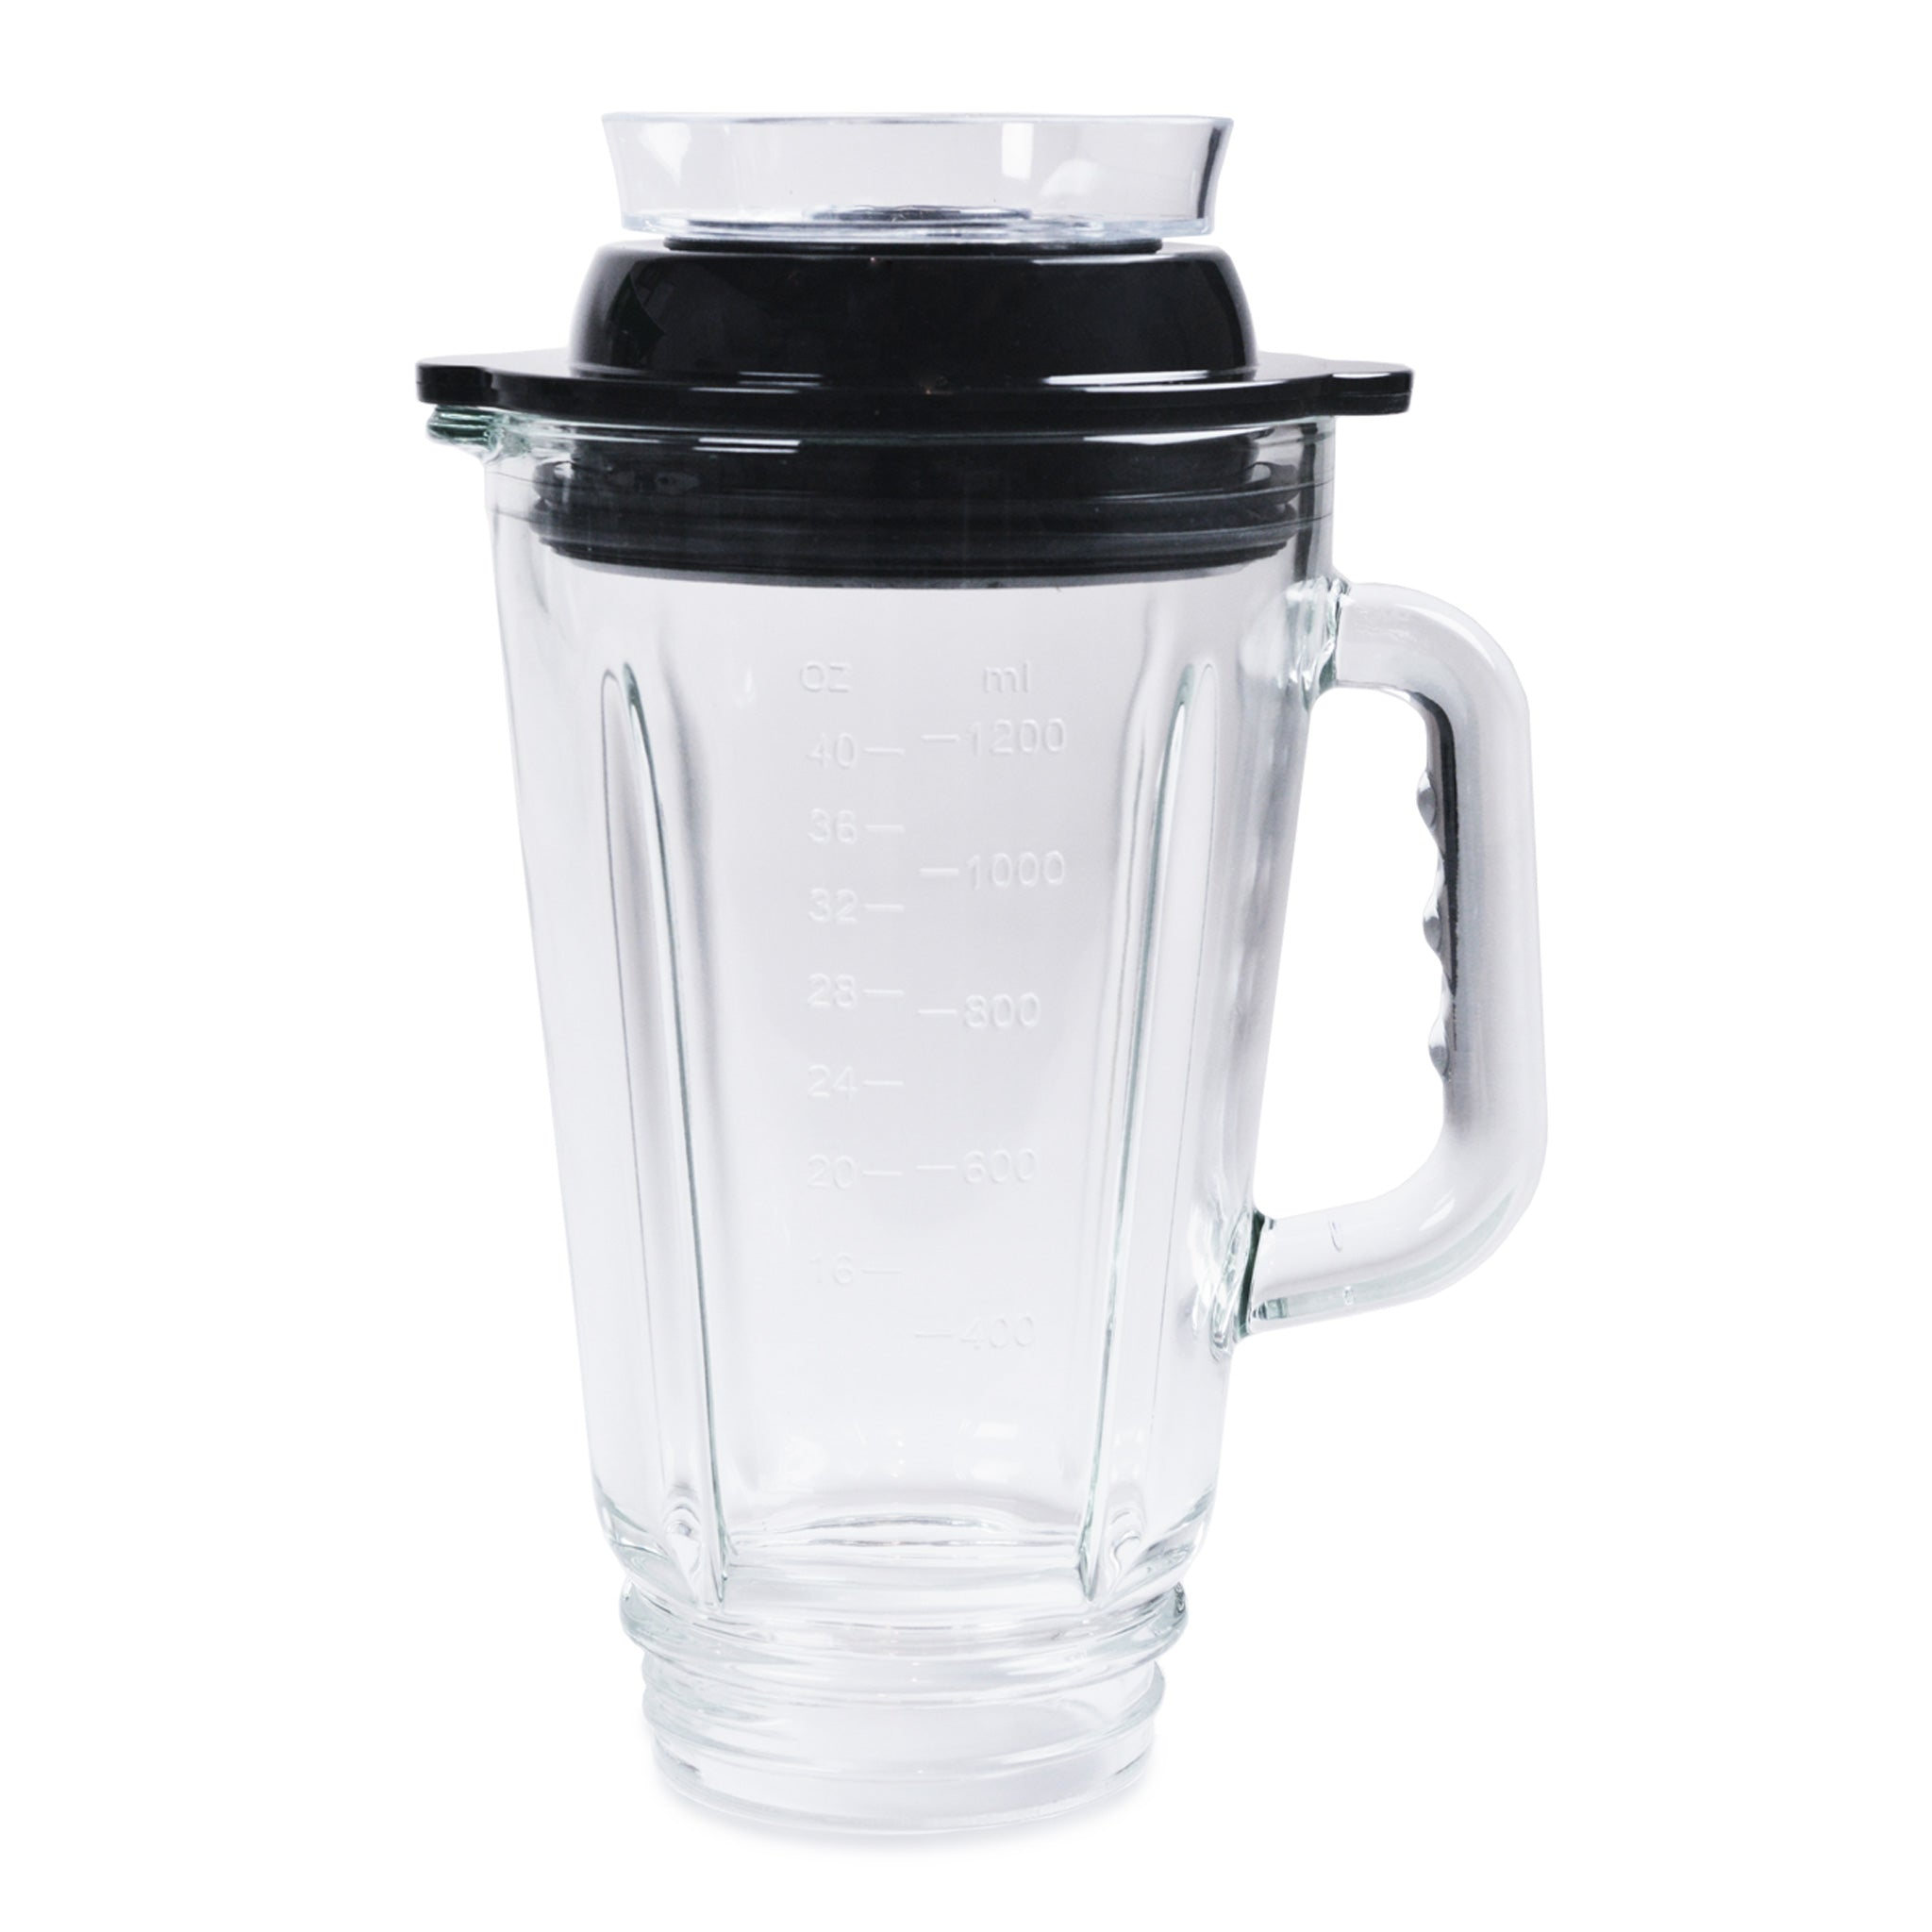 This is the 42 oz glass blending container with vacuum lid for the Glass Personal Blender®. You can use the Tribest® Vacuum Pump (TVP-1050) in conjunction with this to turn your Glass Personal Blender® into a vacuum blender.